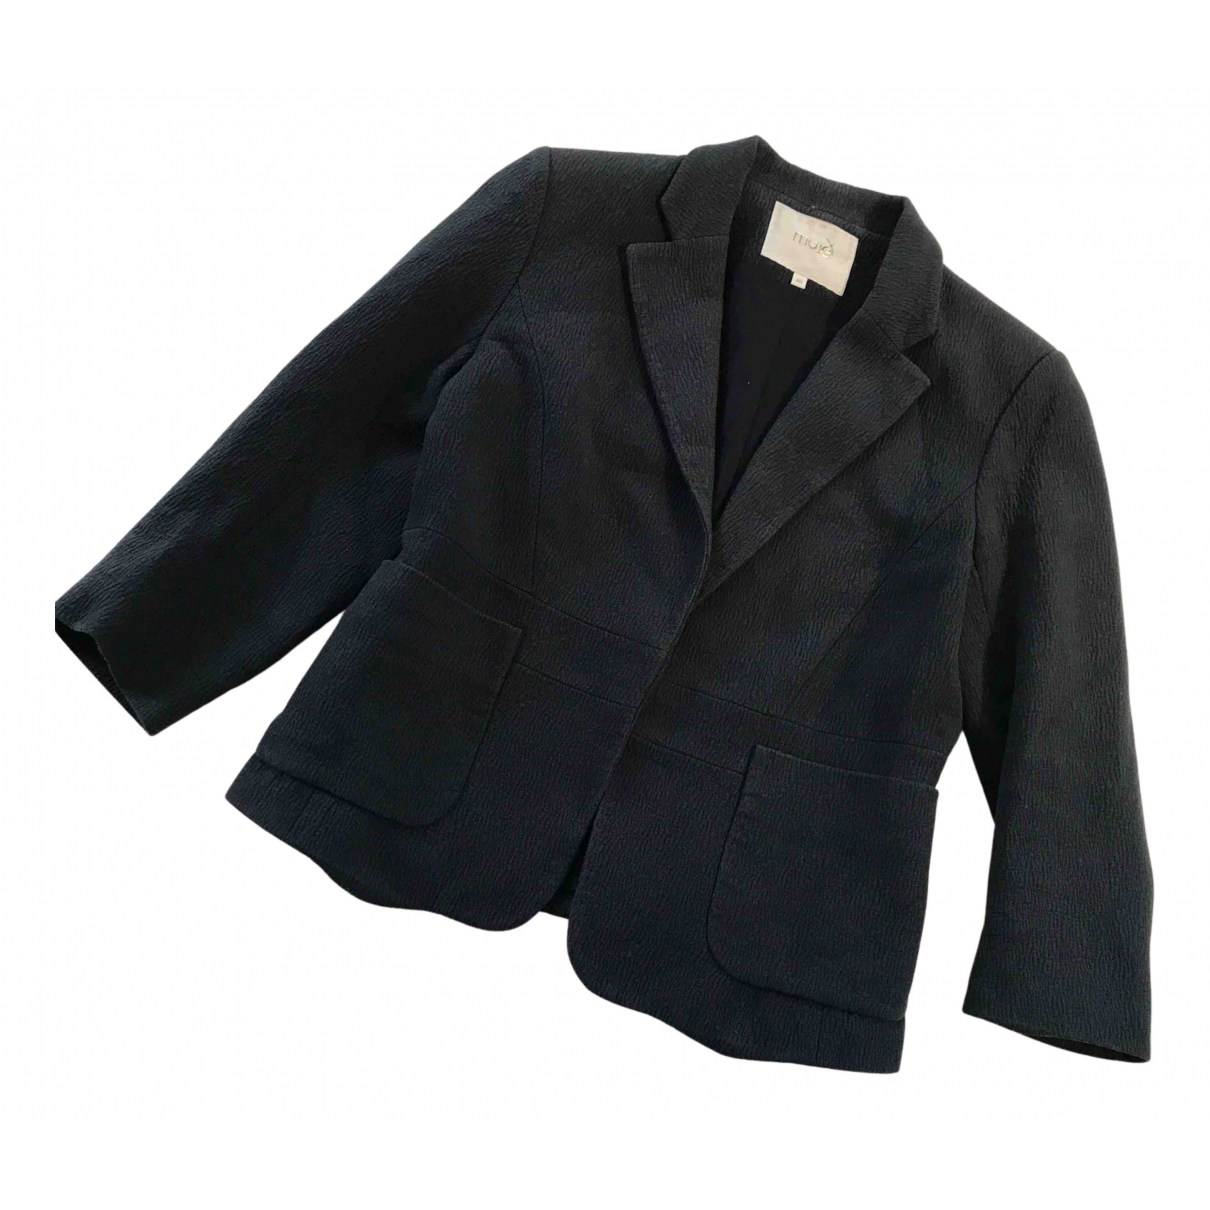 Maje N Anthracite Cotton jacket for Women 40 FR